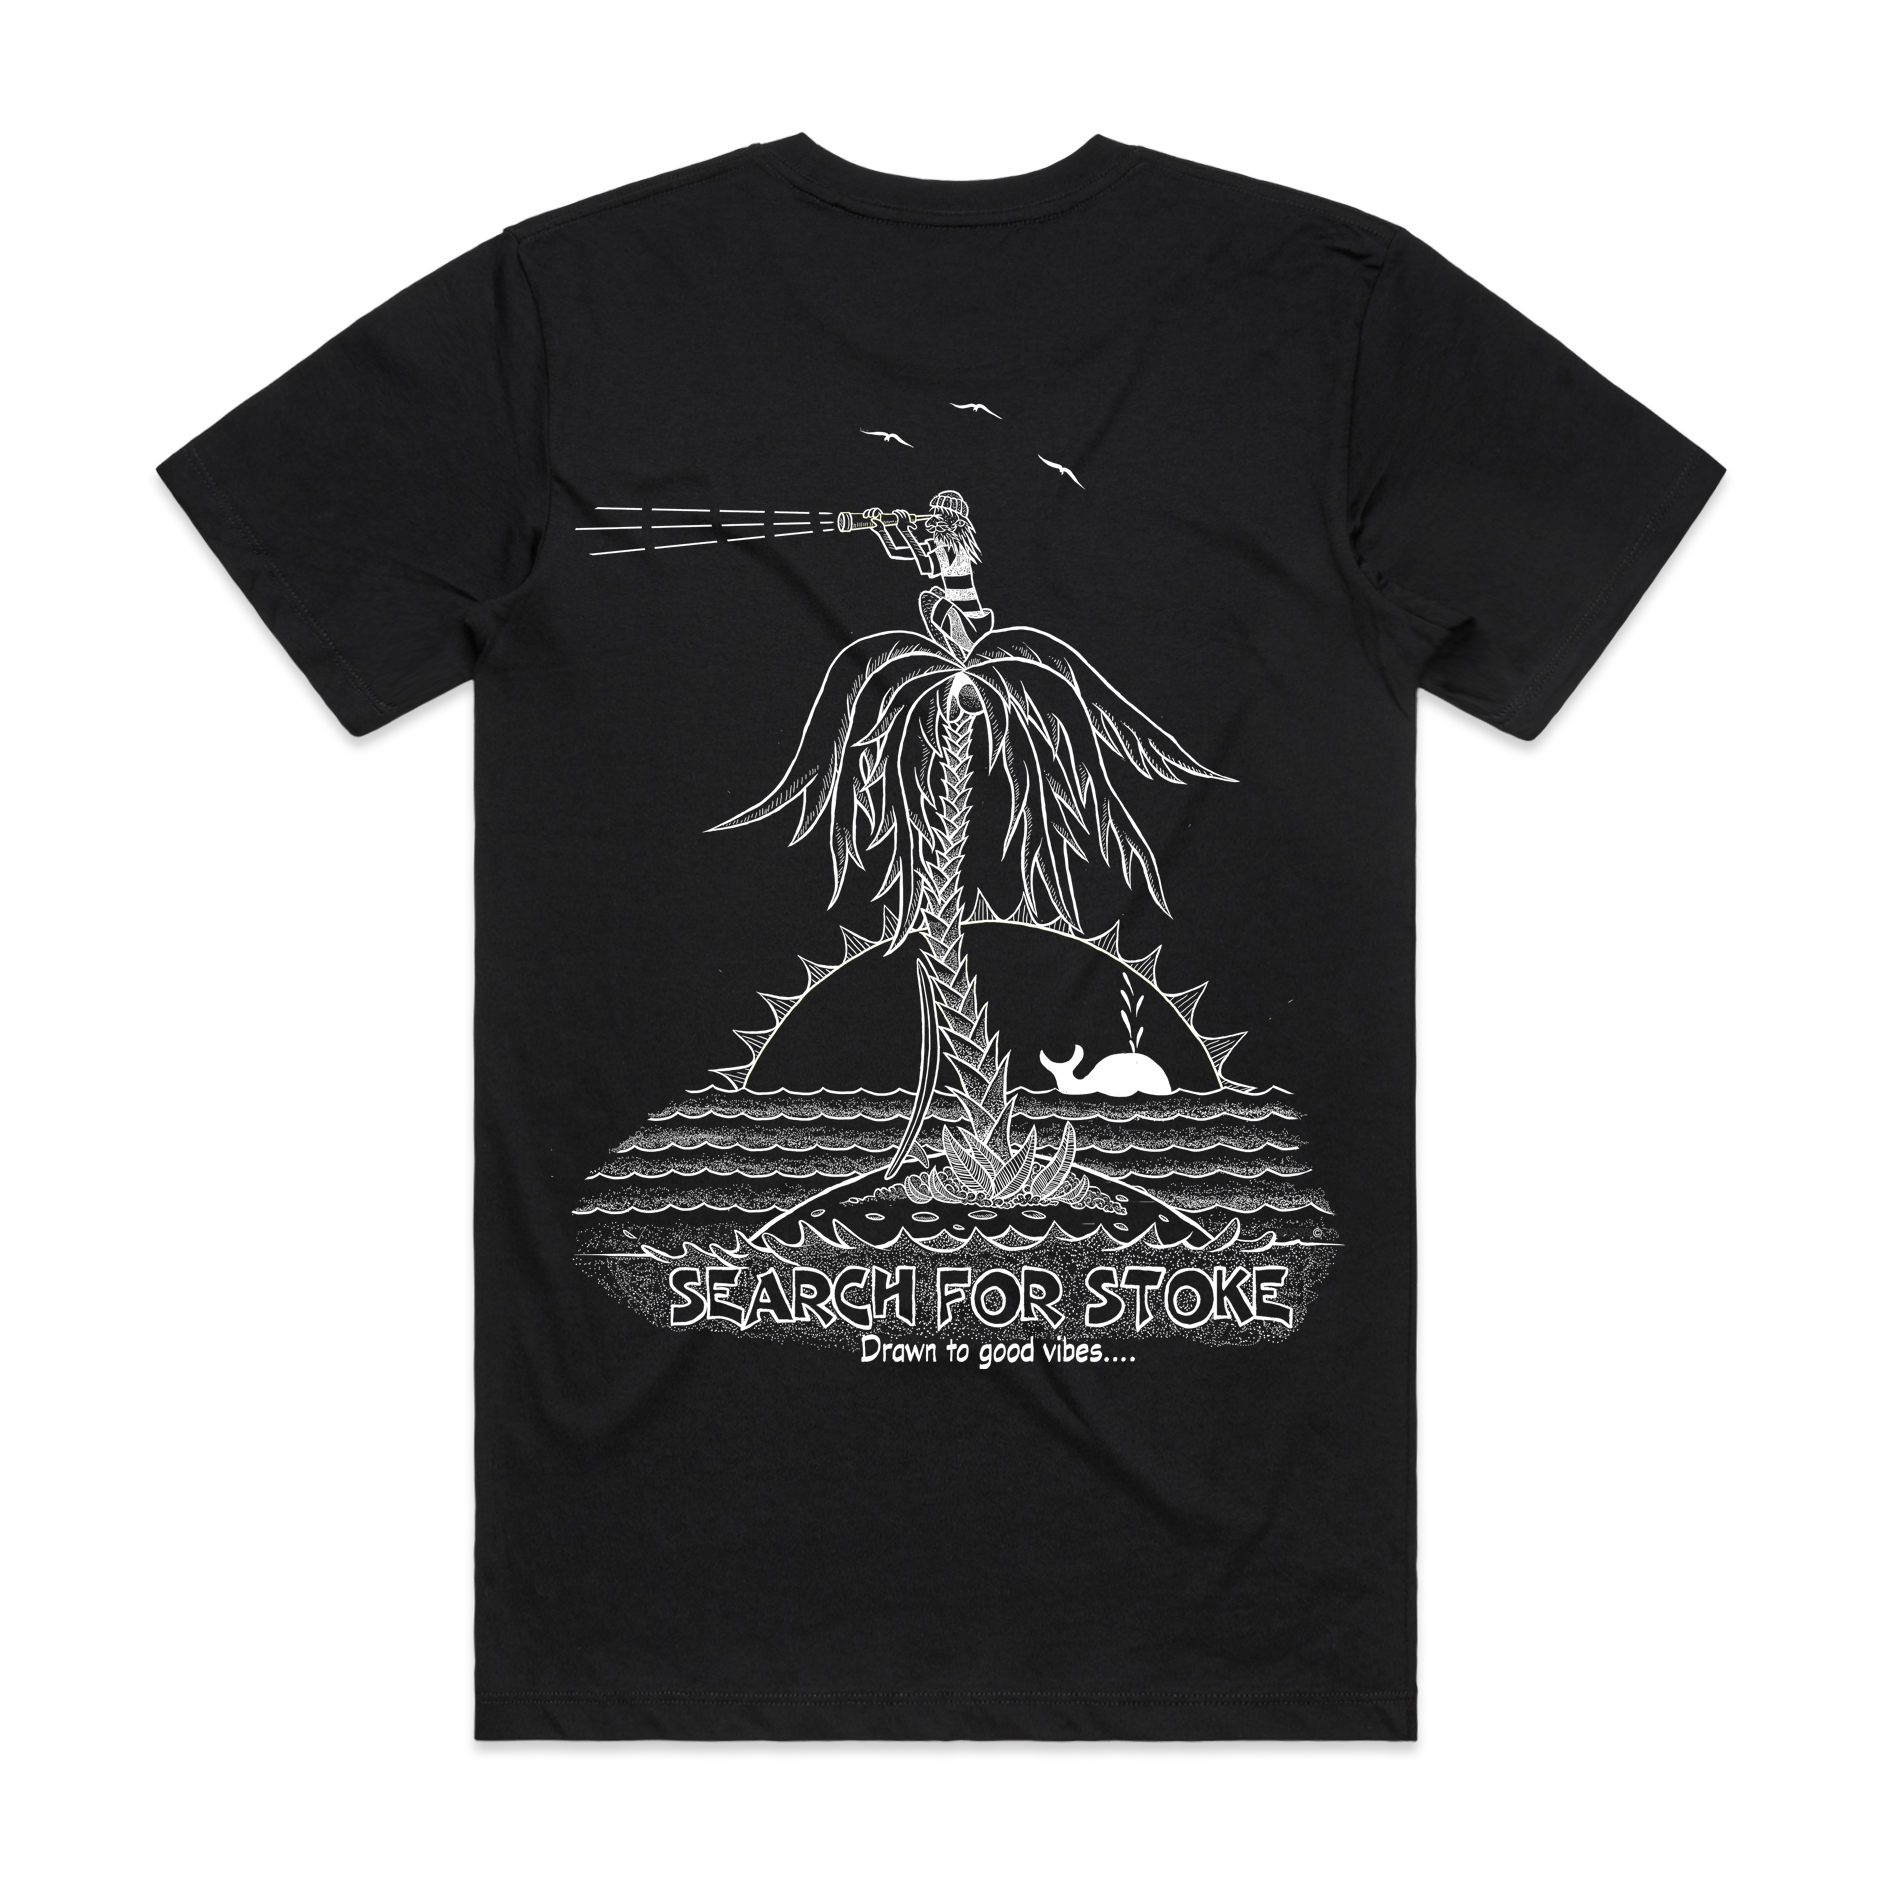 Search For Stoke T-Shirt